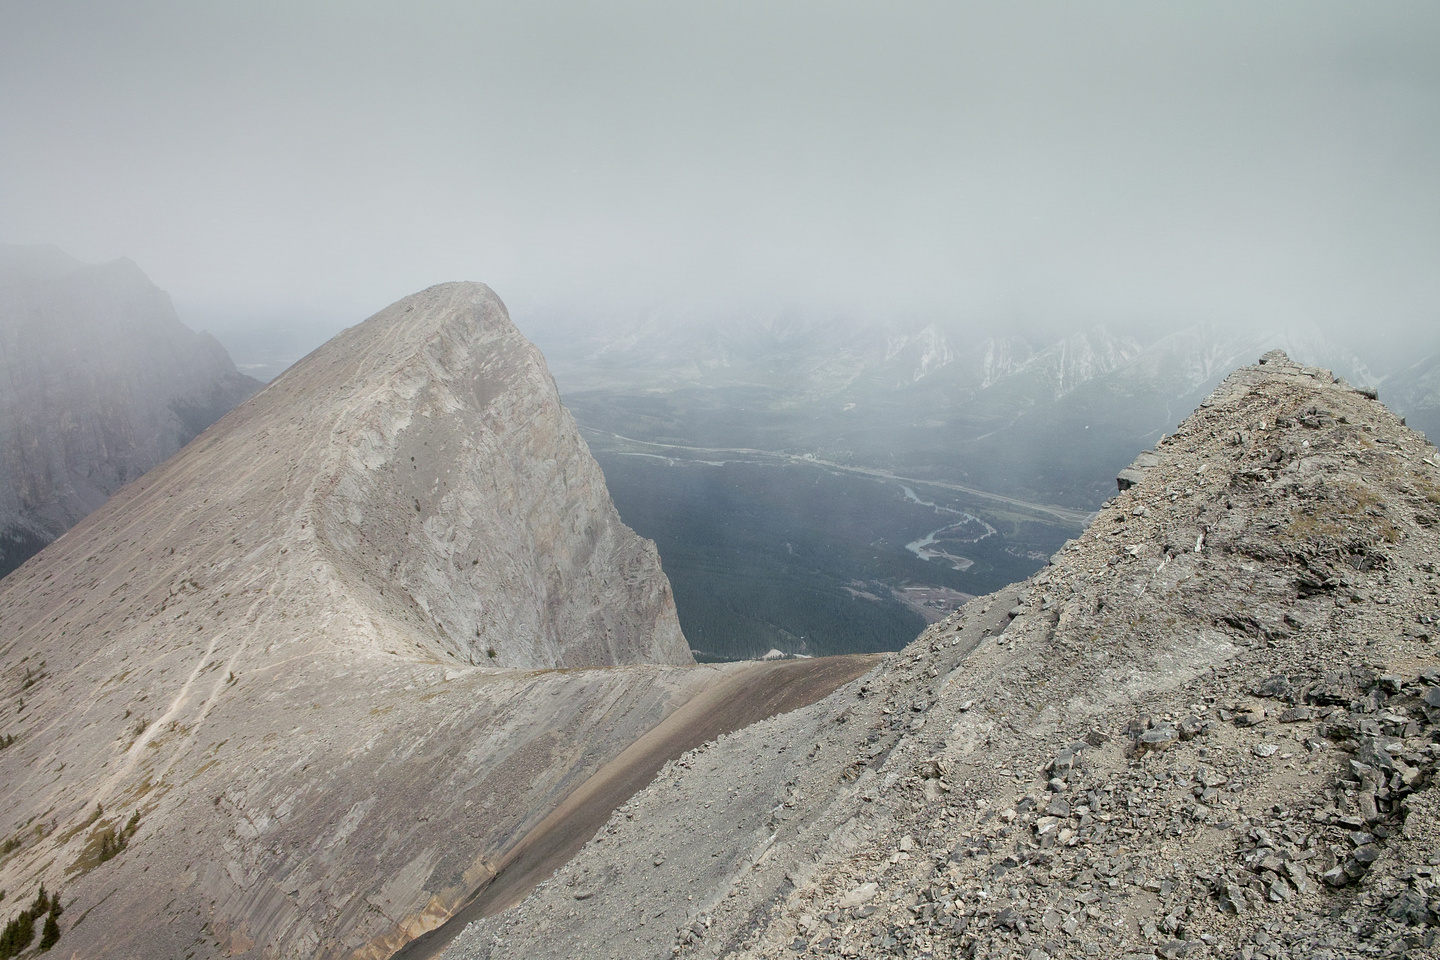 The trails up to the summit of Ha Ling are far more often traveled than the trail up to Miners Peak.